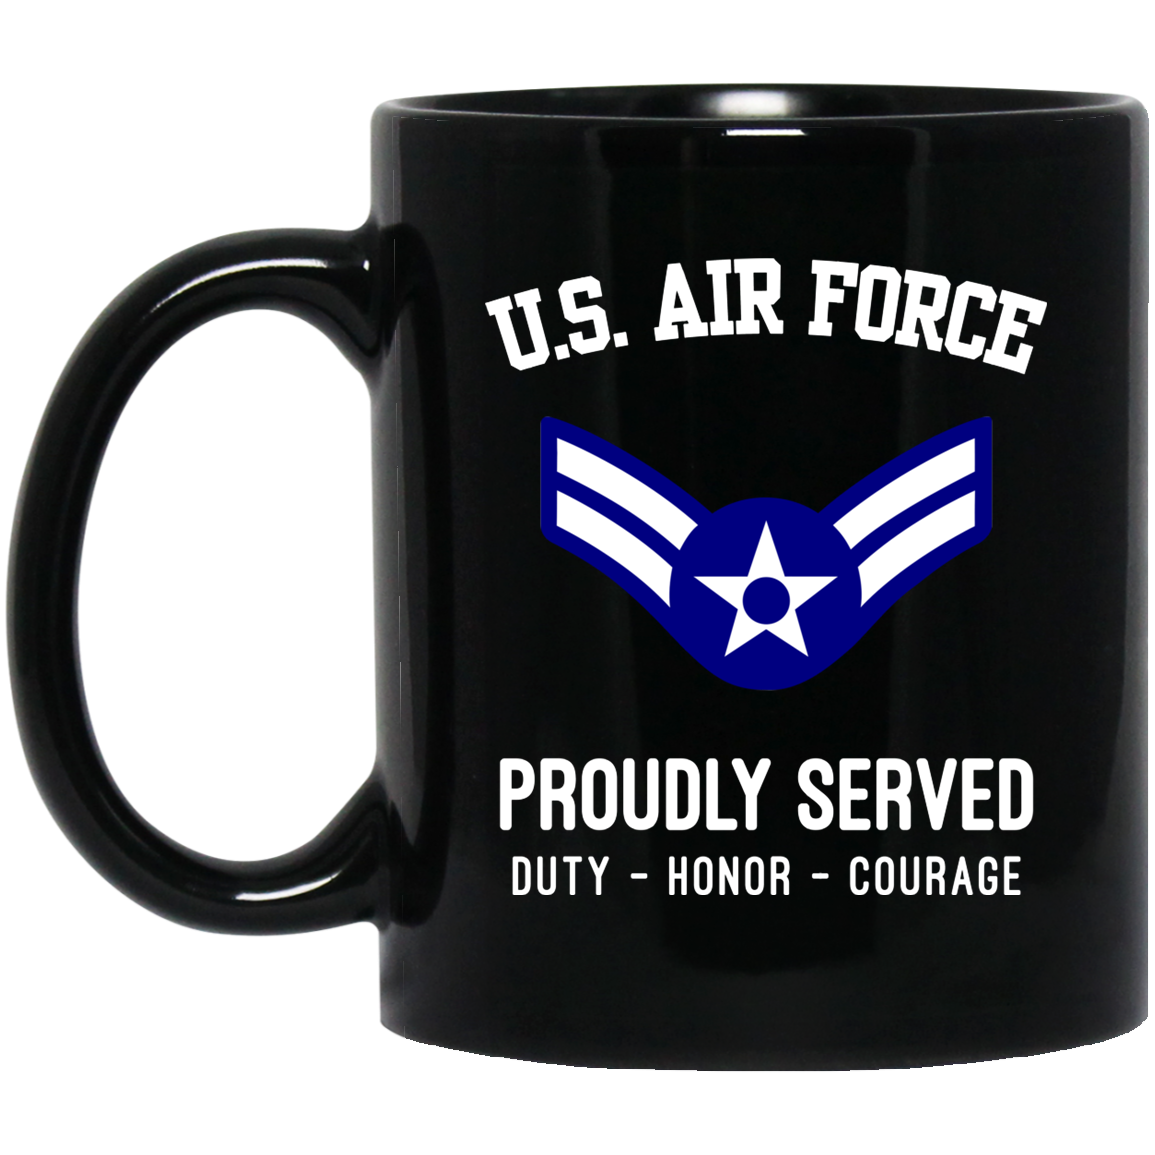 U.S. Air Force E 3 AIRMAN FIRST CLASS A1C E3 ENLISTED AIRMAN PROUDLY SERVED 11 OZ MUG